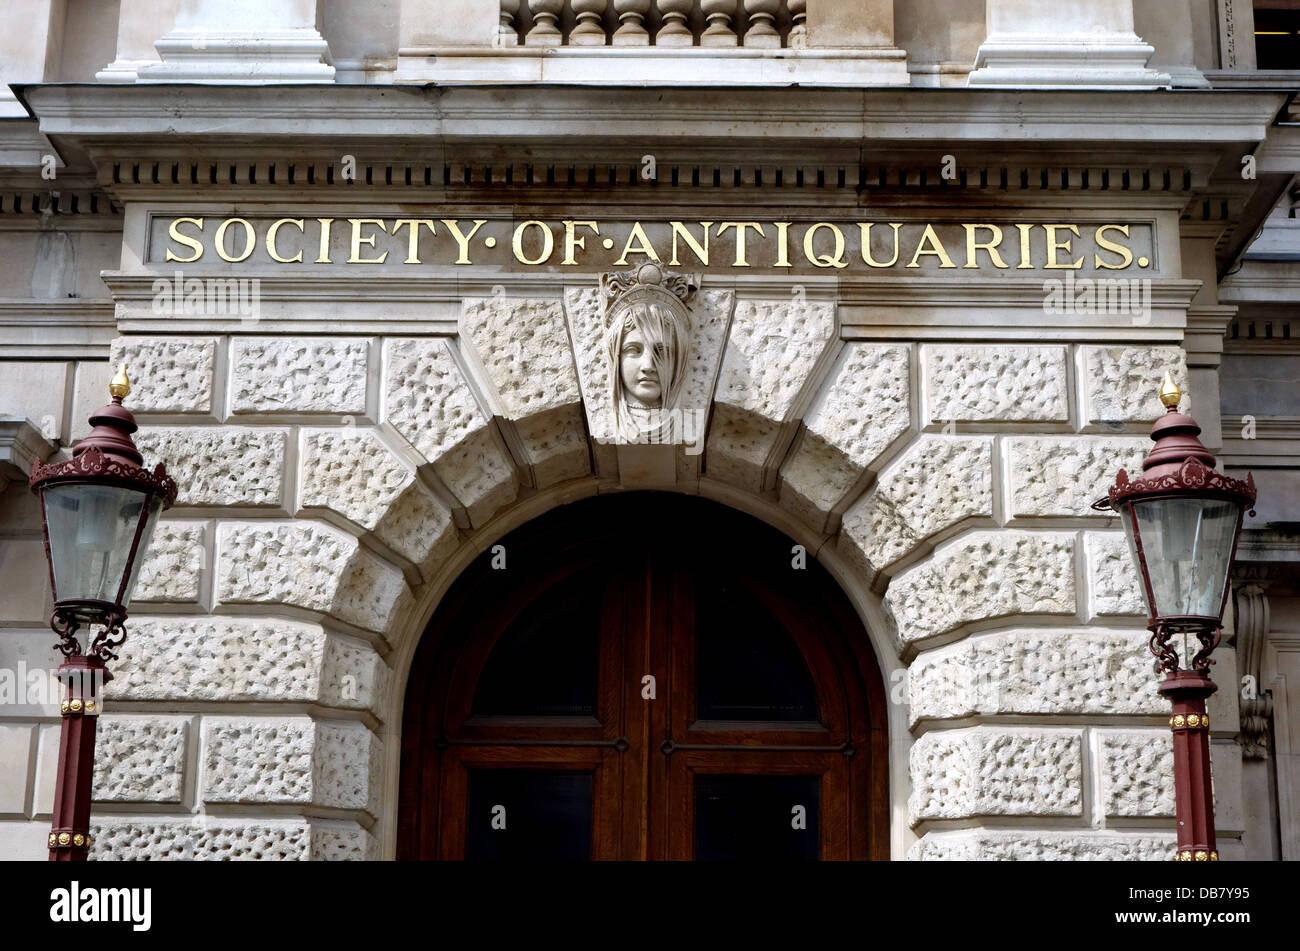 Society of Antiquaries, Piccadilly, London - Stock Image